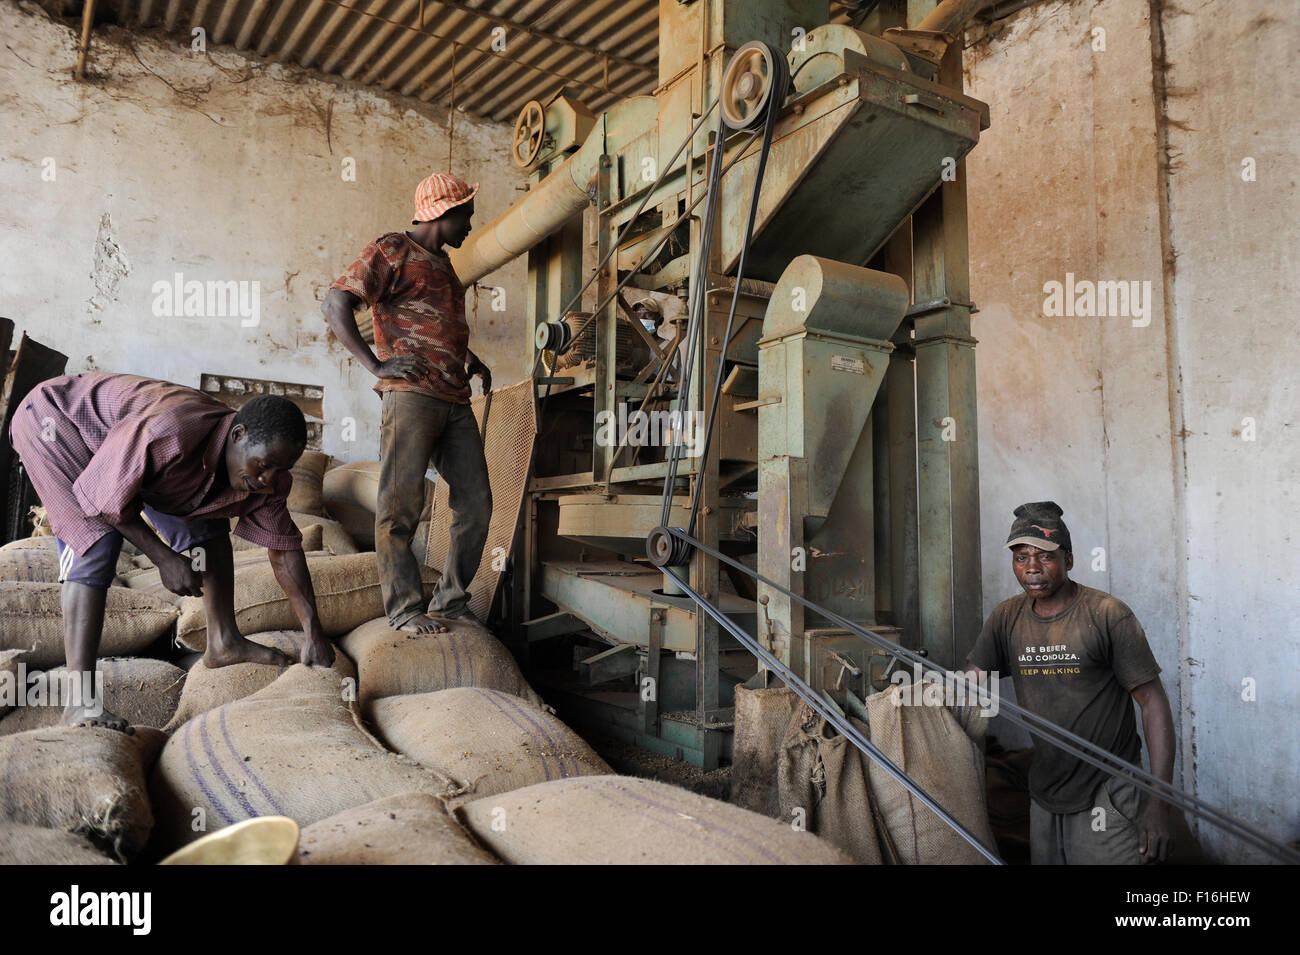 ANGOLA Calulo, coffee processing unit - Stock Image